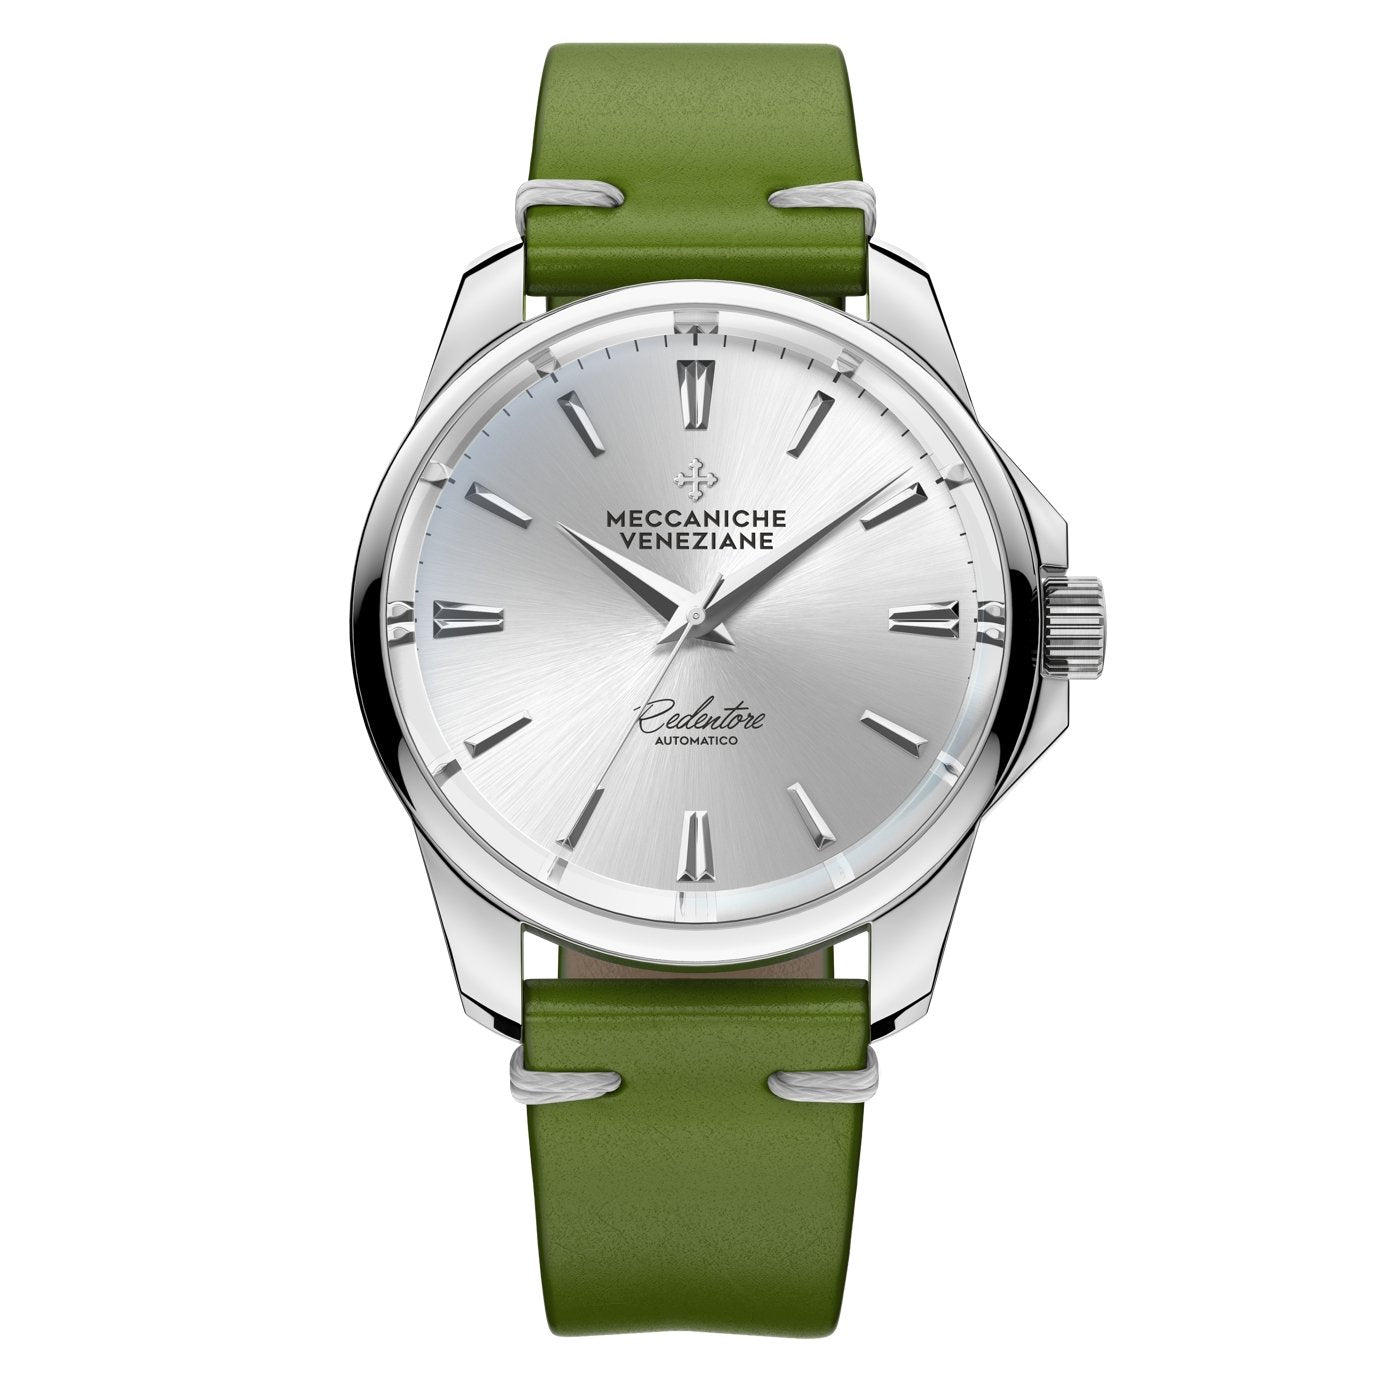 Meccaniche Veneziane Redentore 36 Green - Watches & Crystals